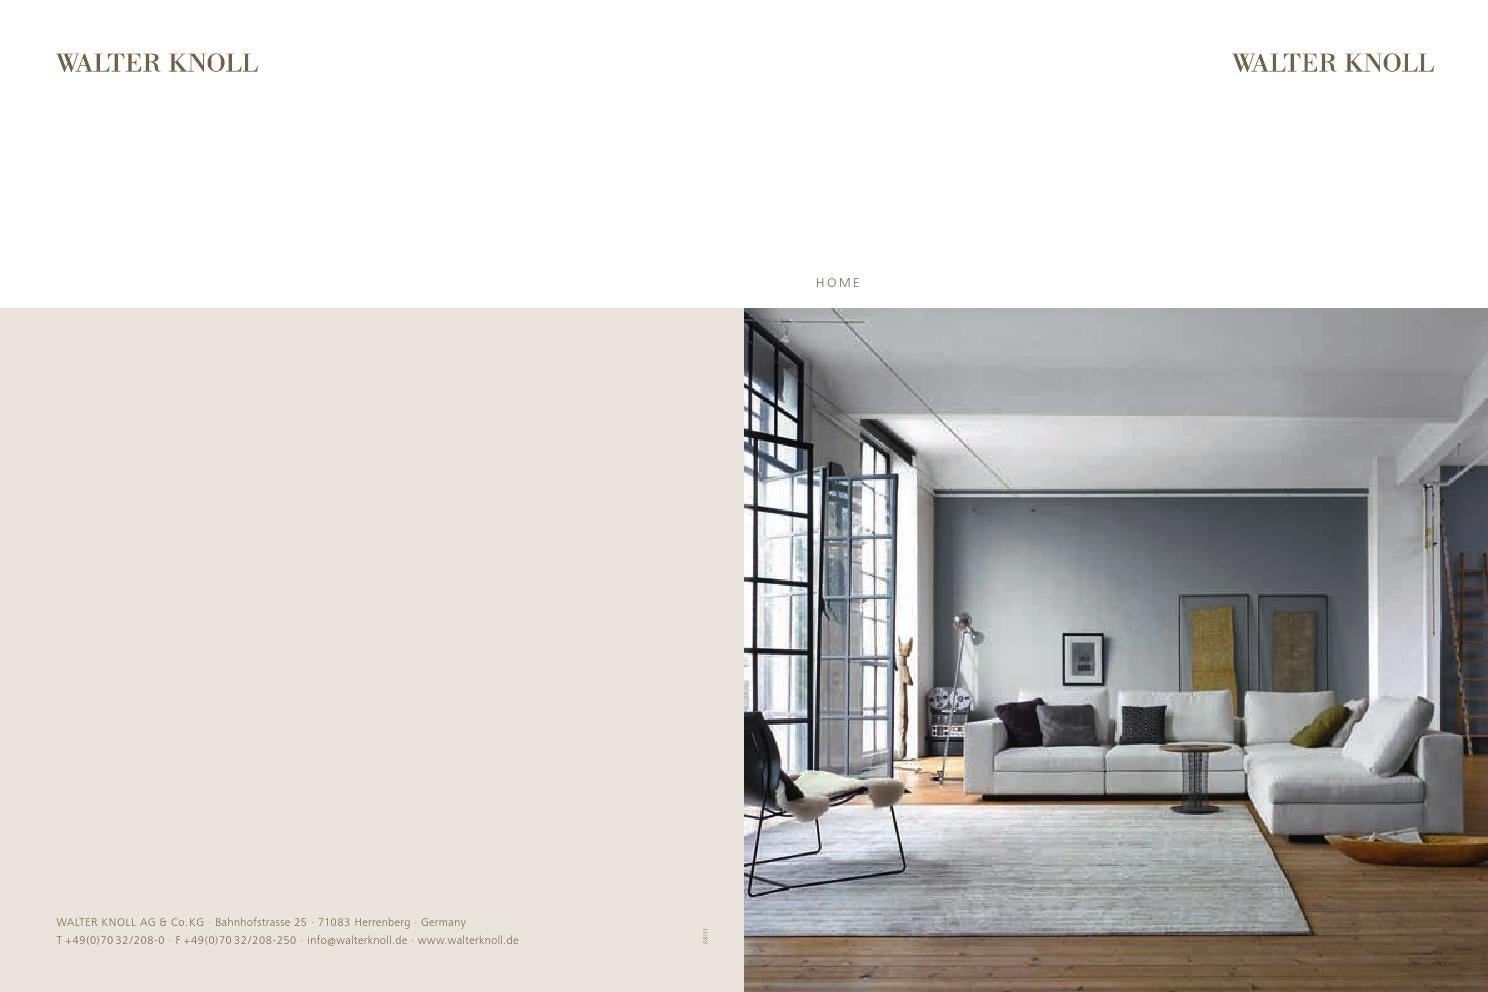 Walter knoll home by 100interior issuu